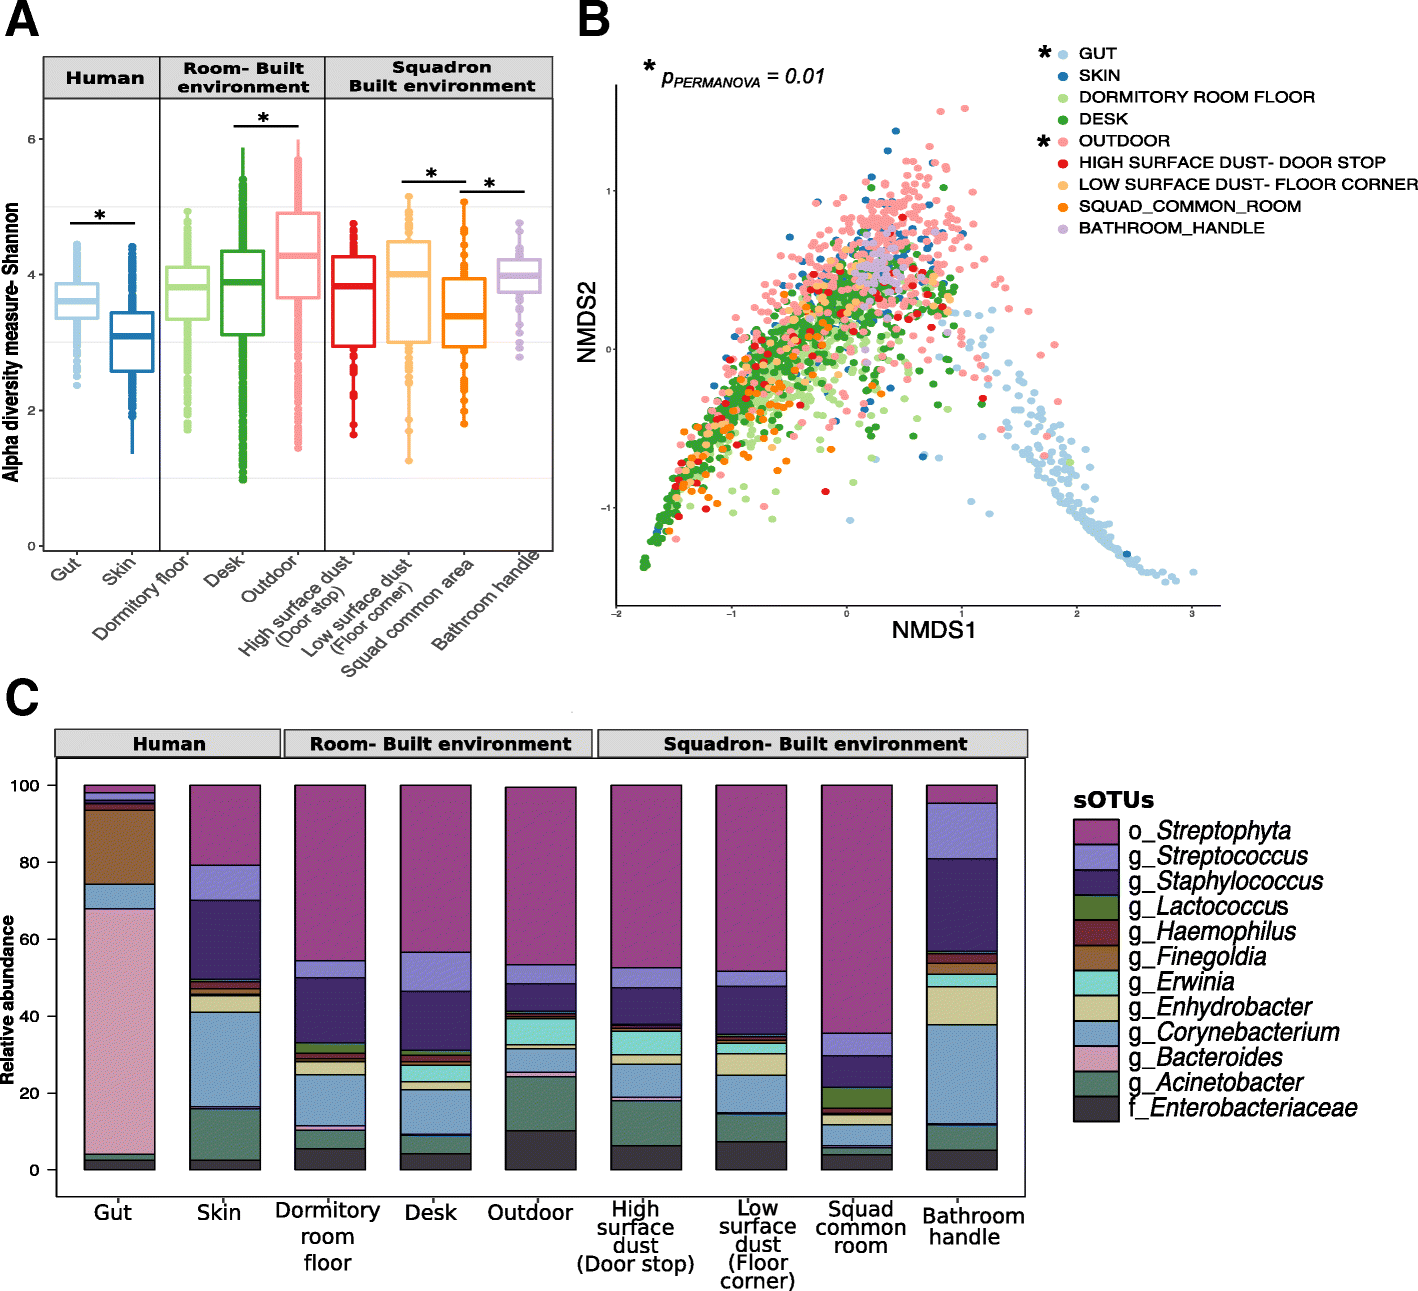 Longitudinal homogenization of the microbiome between both occupants